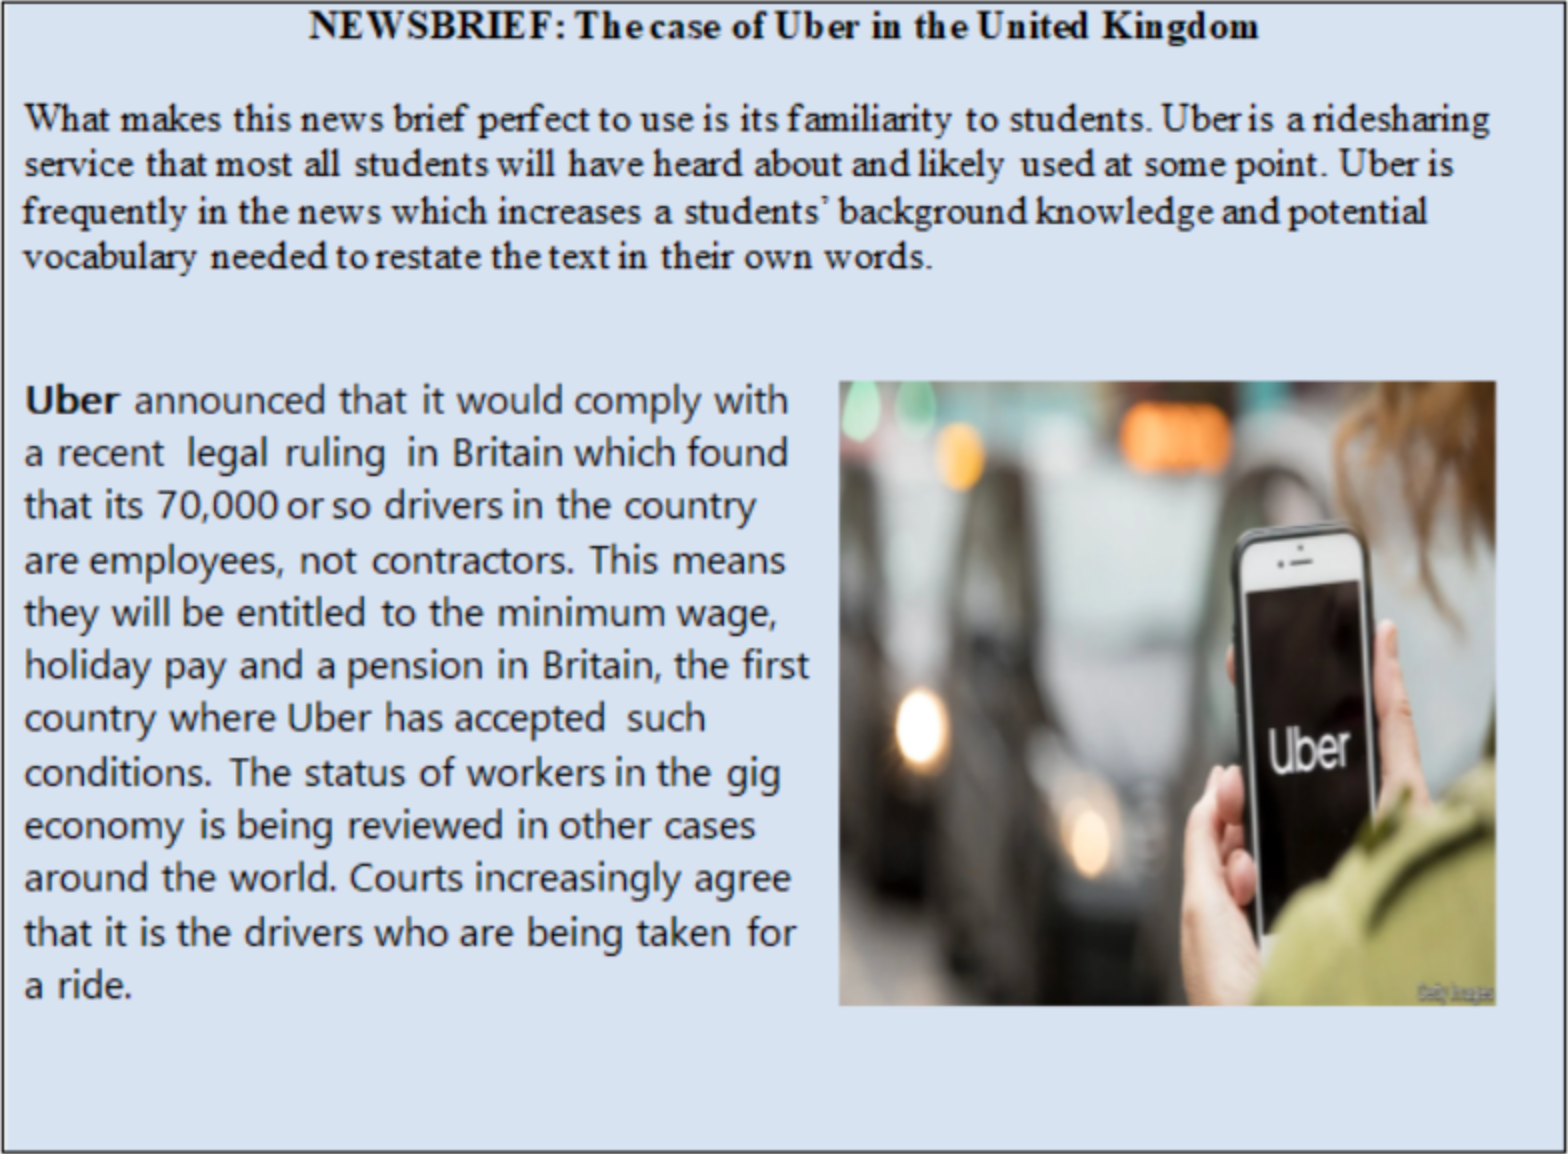 NEWSBRIEF: The case of Uber in the United Kingdom      What makes this news brief perfect to use is its familiarity to students. Uber is a ridesharing service that most all students will have heard about and likely used at some point. Uber is frequently in the news which increases a students' background knowledge and potential vocabulary needed to restate the text in their own words.       Uber announced that it would comply with a recent legal ruling in Britain which found that its 70,000 or so drivers in the country are employees, not contractors. This means they will be entitled to the minimum wage, holiday pay and a pension in Britain, the first country where Uber has accepted such conditions. The status of workers in the gig economy is being reviewed in other cases around the world. Courts increasingly agree that it is the drivers who are being taken for a ride.